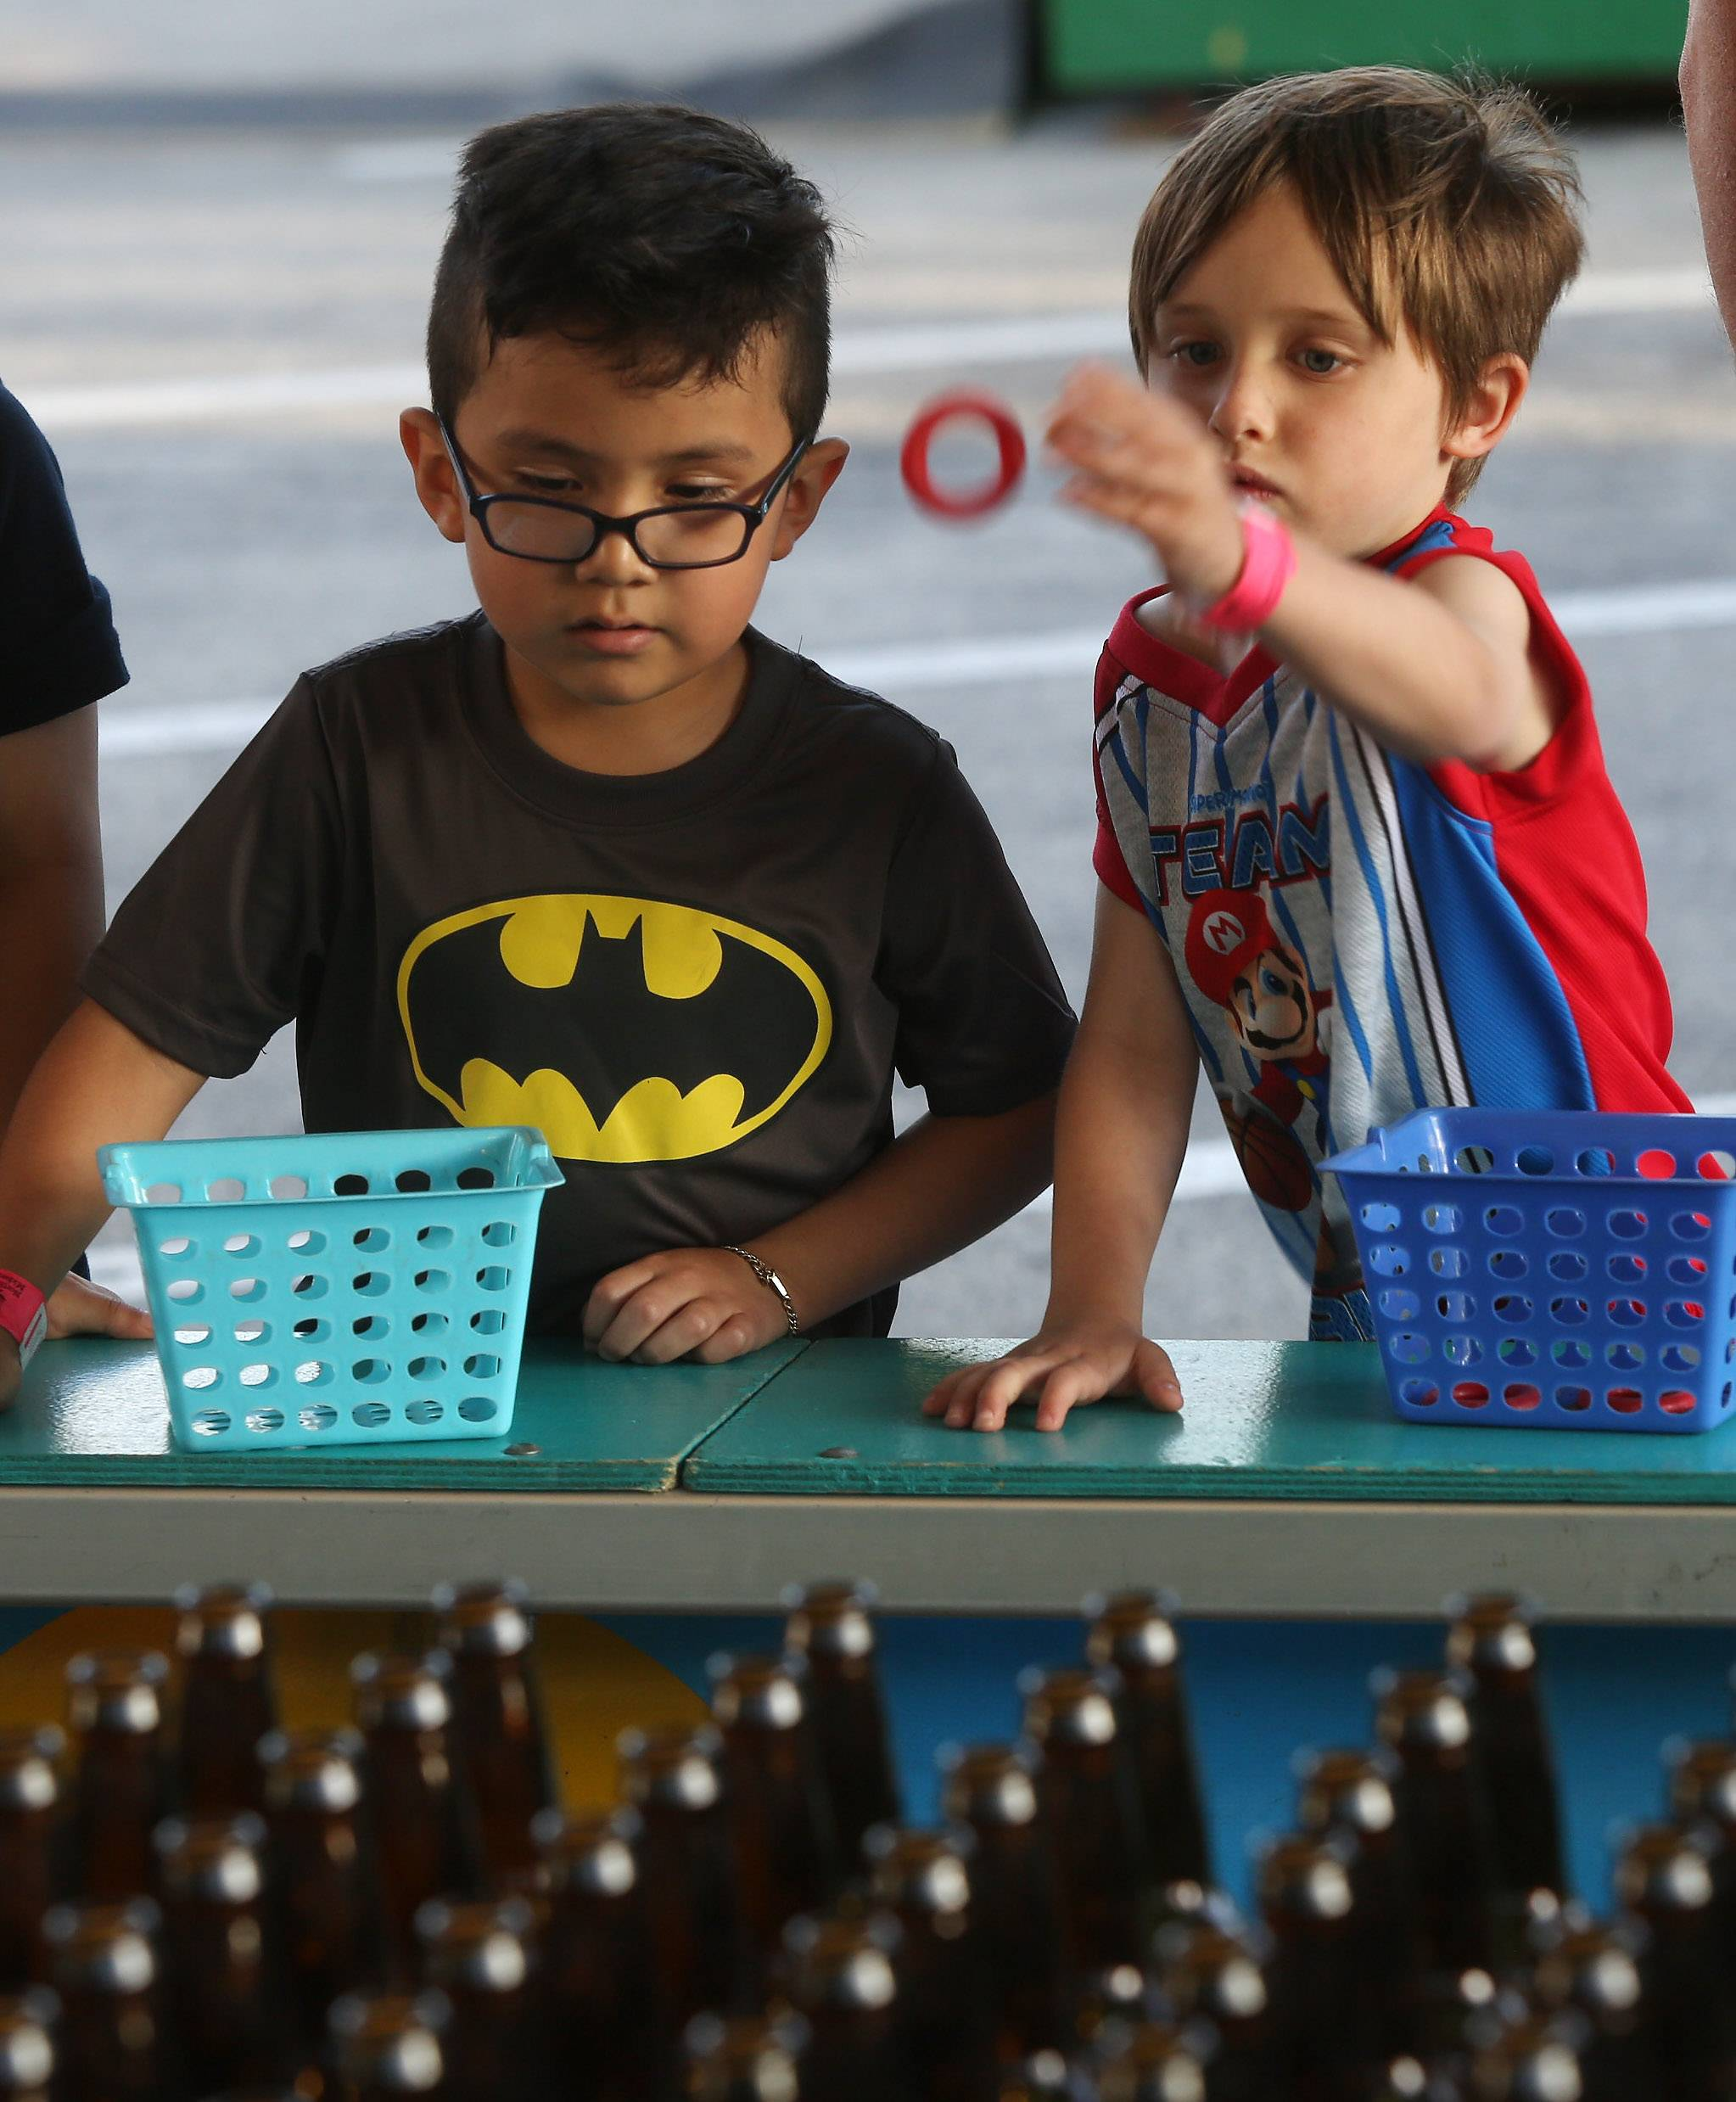 Husai Morales, 5, of Mundelein and Mathias Klemp, 6, of Libertyville play a rings game on the midway during the first day of the Libertyville Days Festival on Thursday.